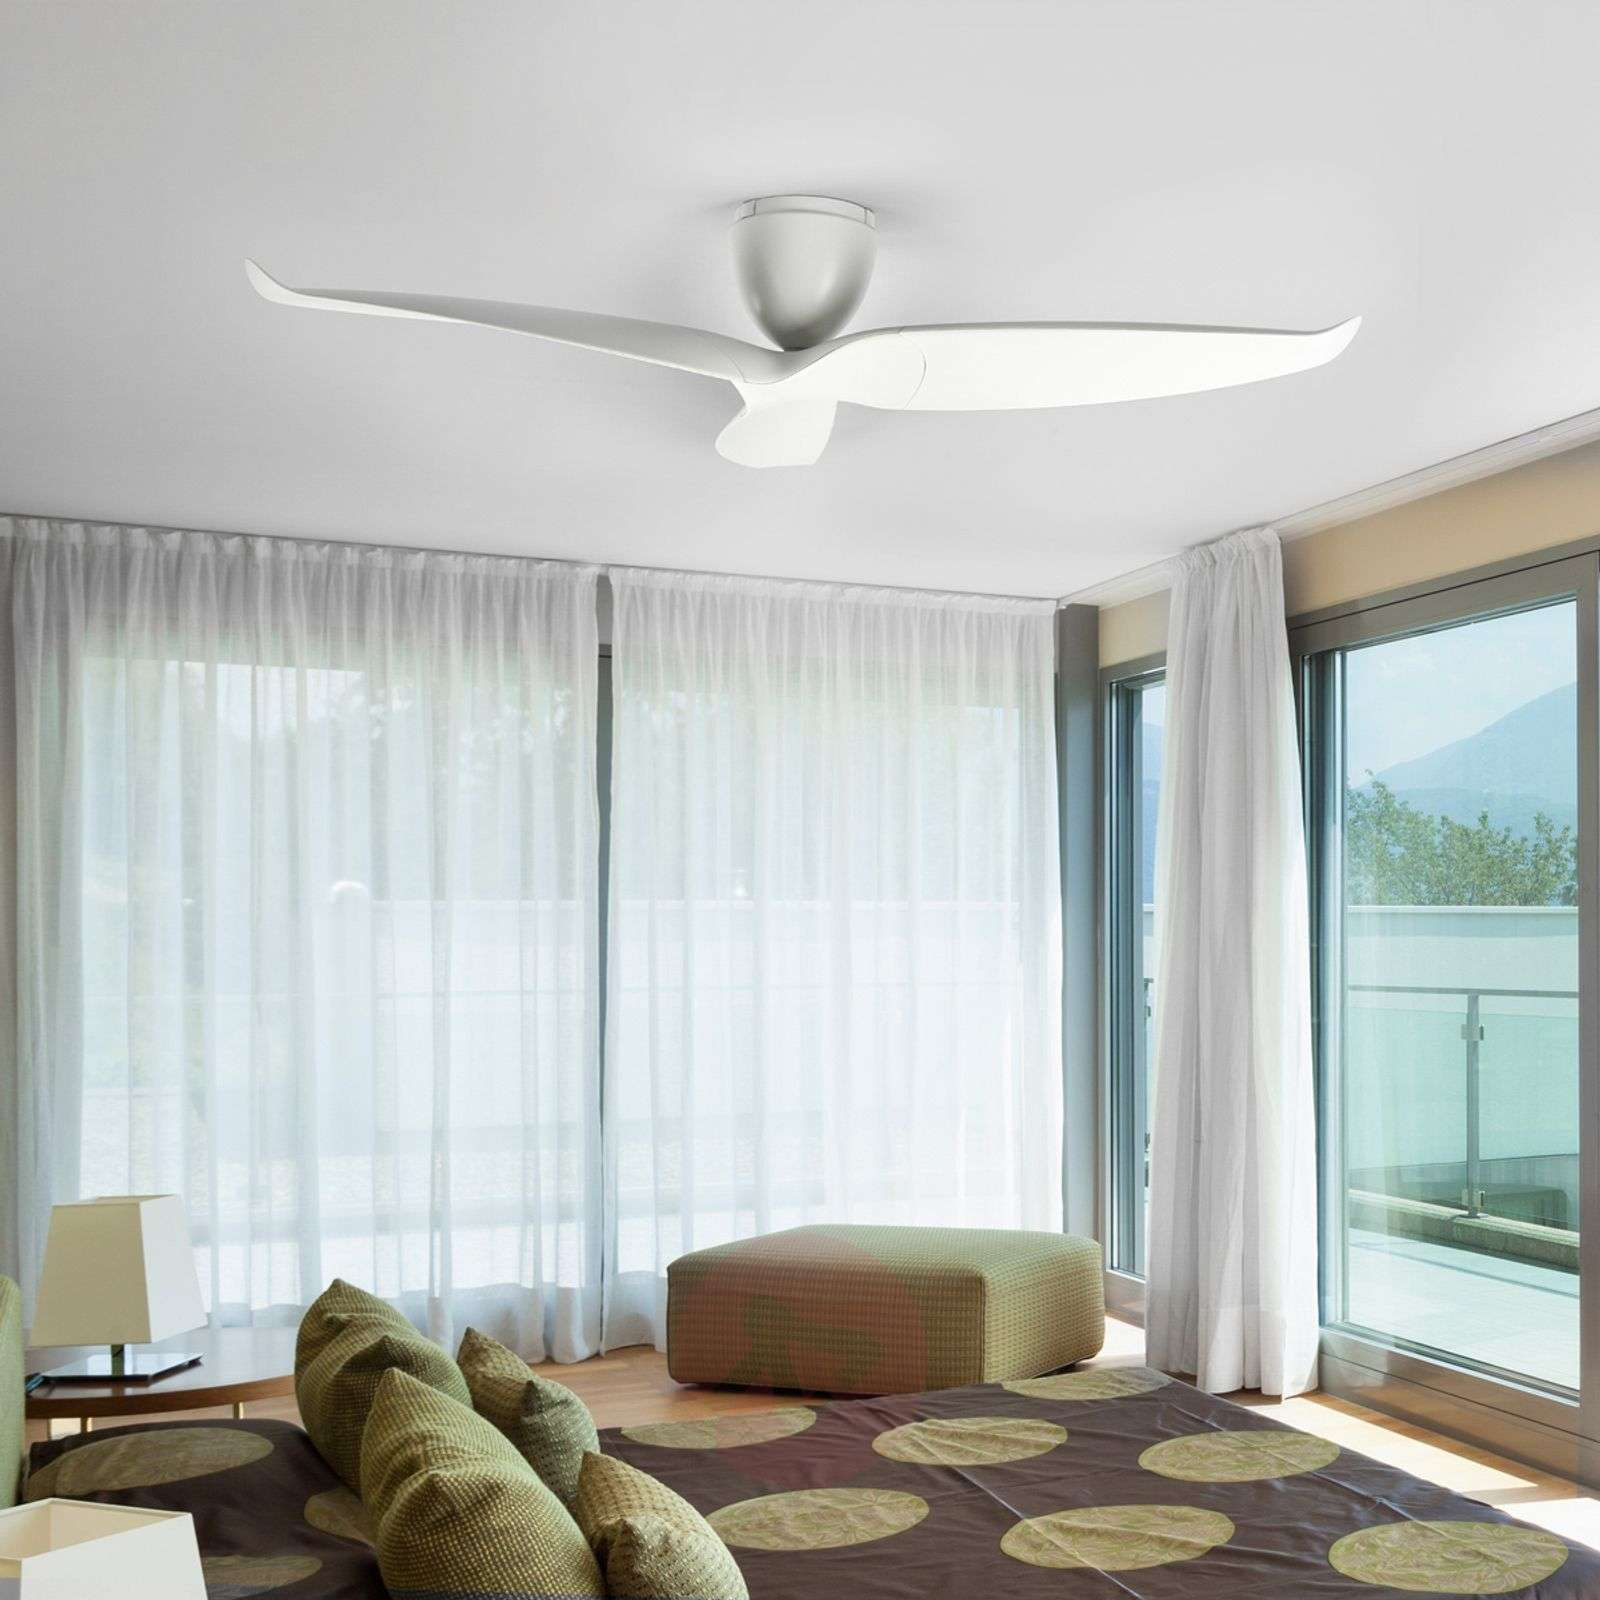 Large ceiling fan Seraphine, white, 152.4 cm-1068014-021